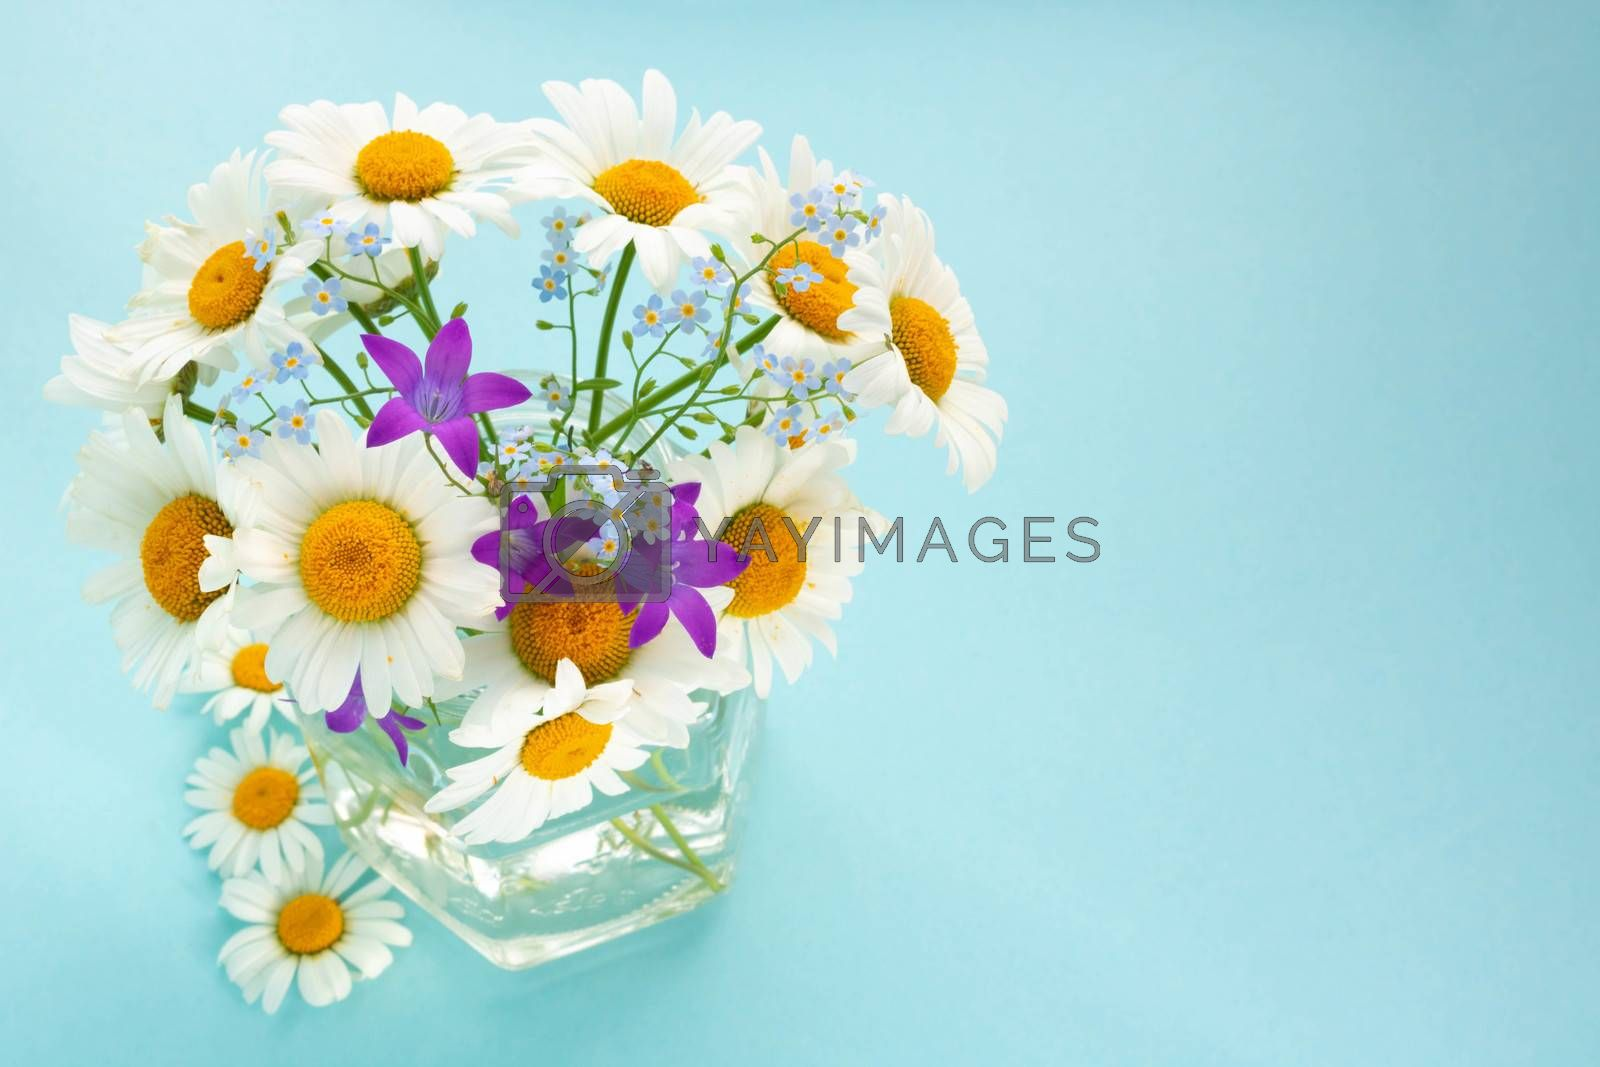 Chamomile, bluebells and forget-me-nots.Bouquet in a glass jar on a blue background